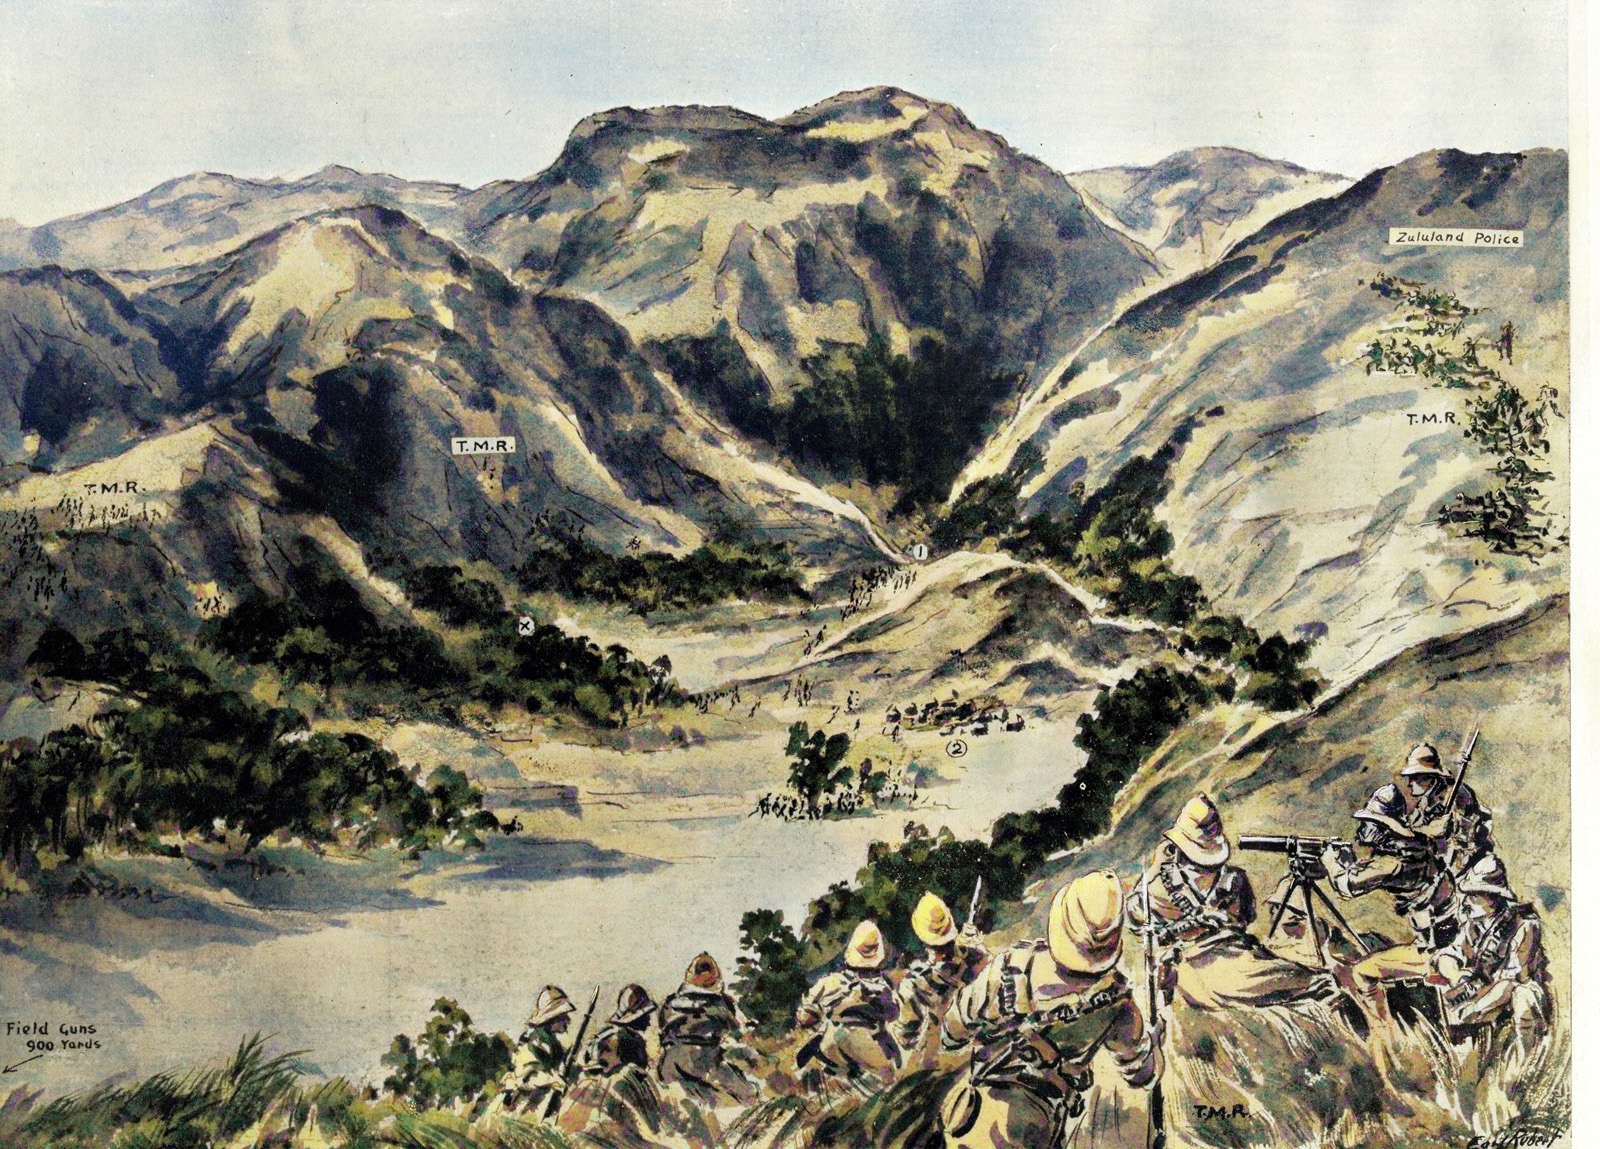 Barker's men open fire on the surprised rebels, most of whom fled through the narrow entrance to the gorge in the centre of the picture only to meet McKenzie's troops further down